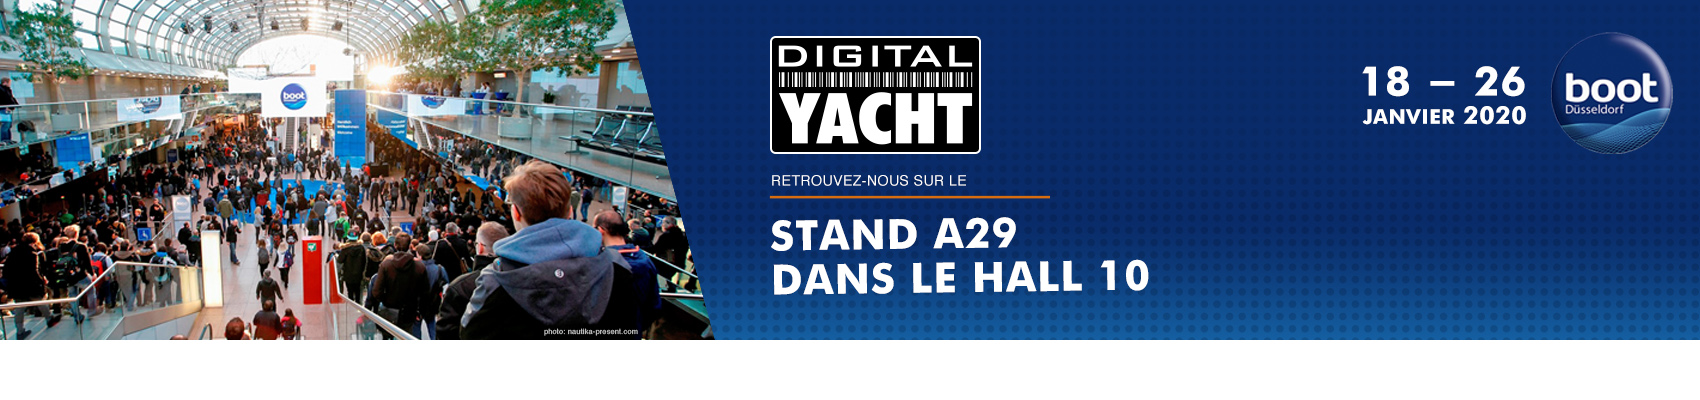 Digital Yacht au Boot de Dusseldorf